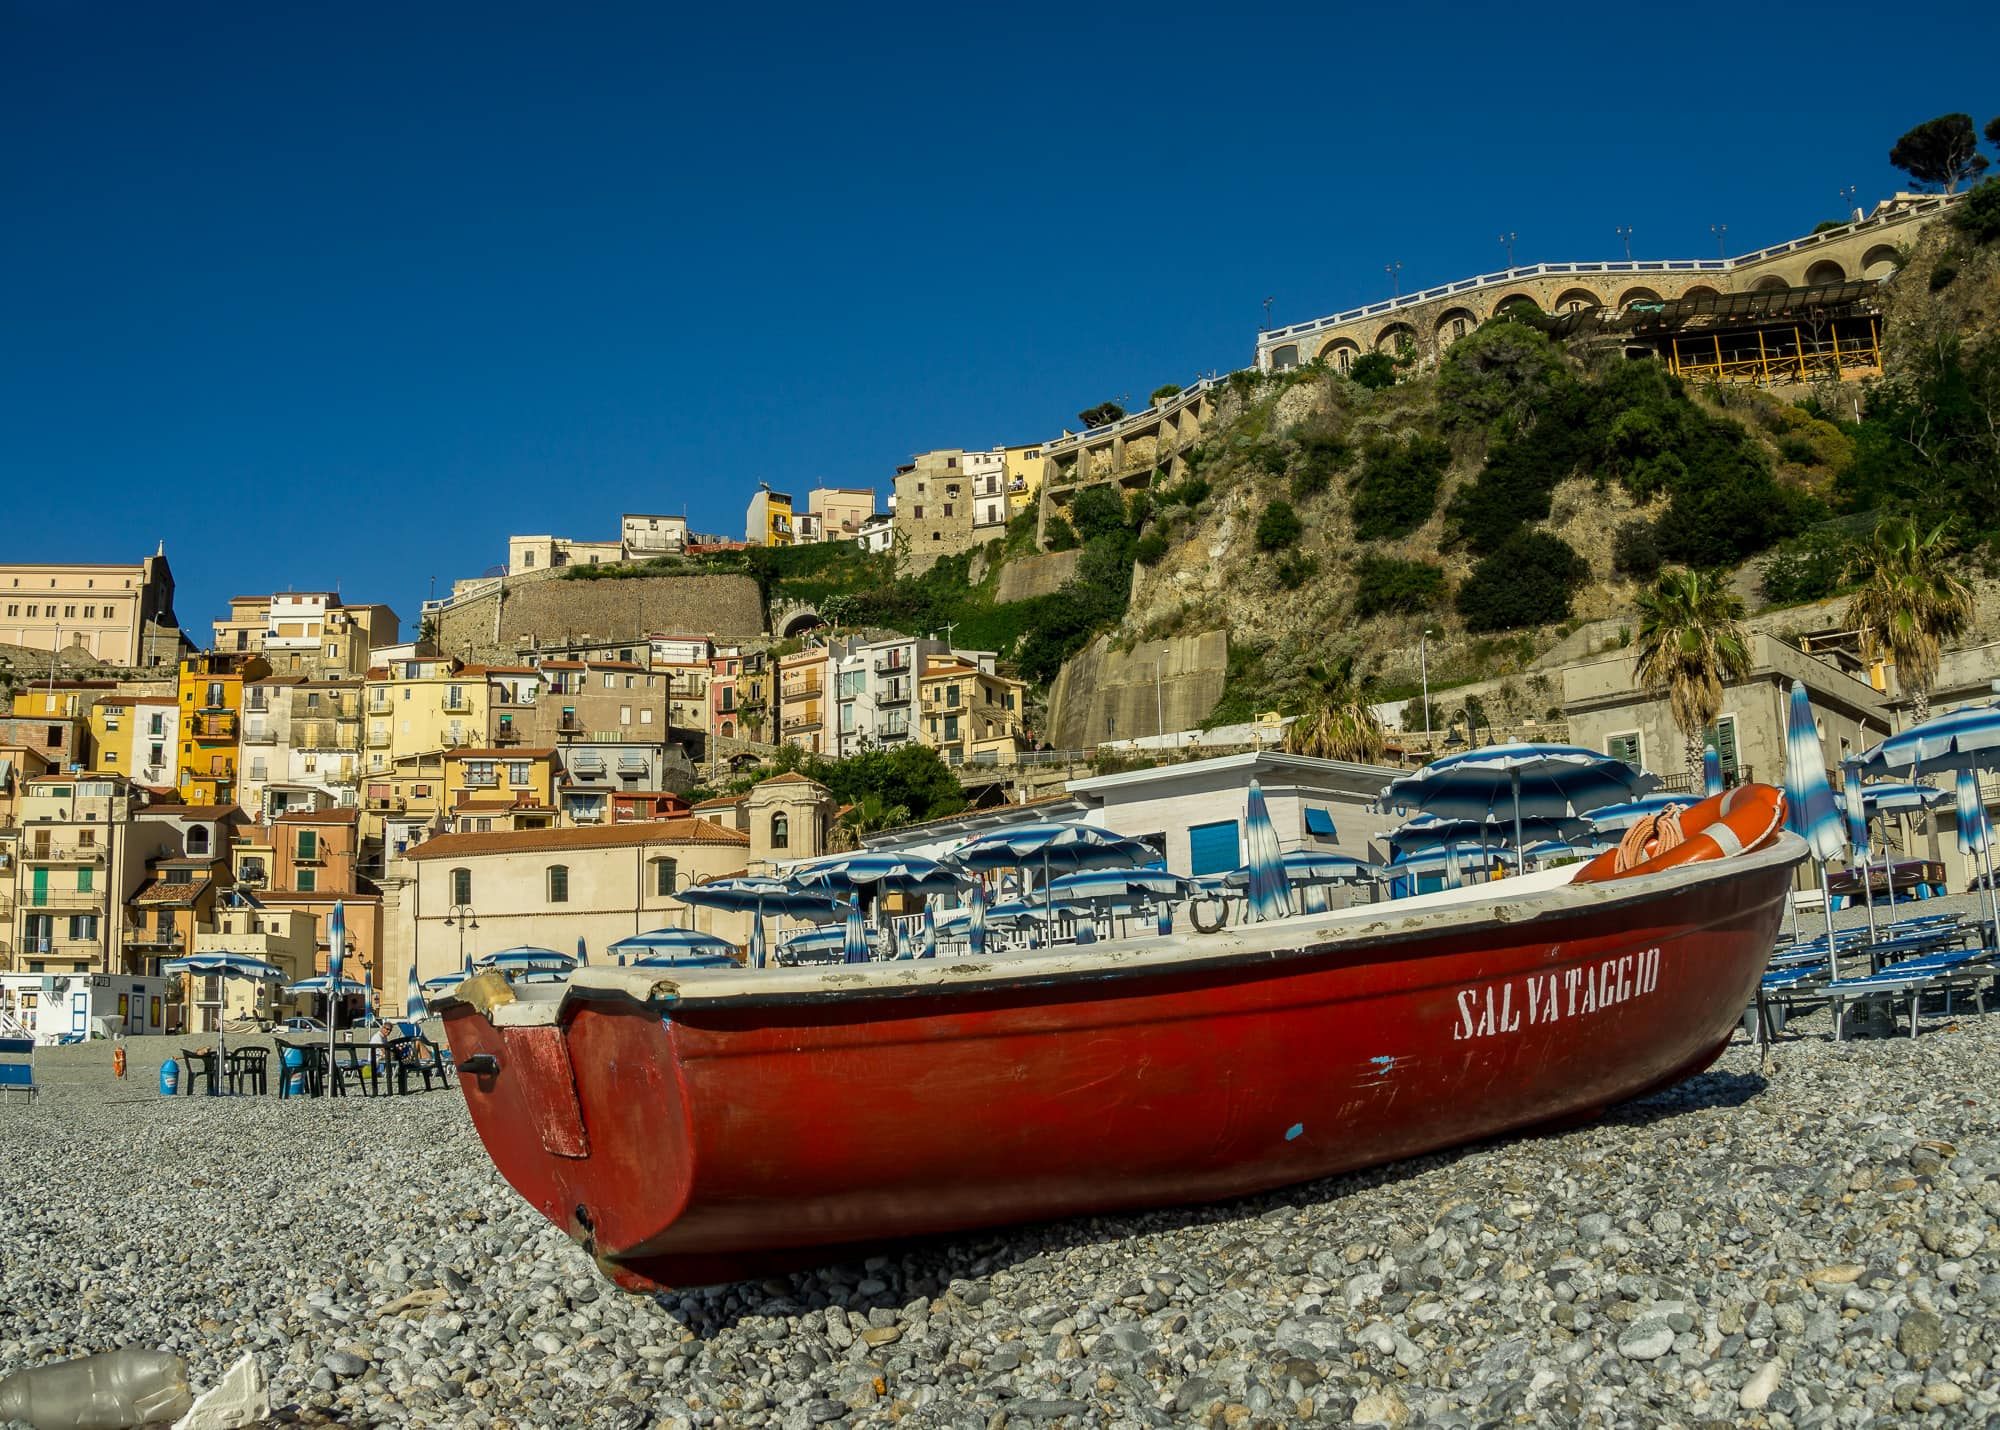 Magnificent Calabria a Southern Italy destination